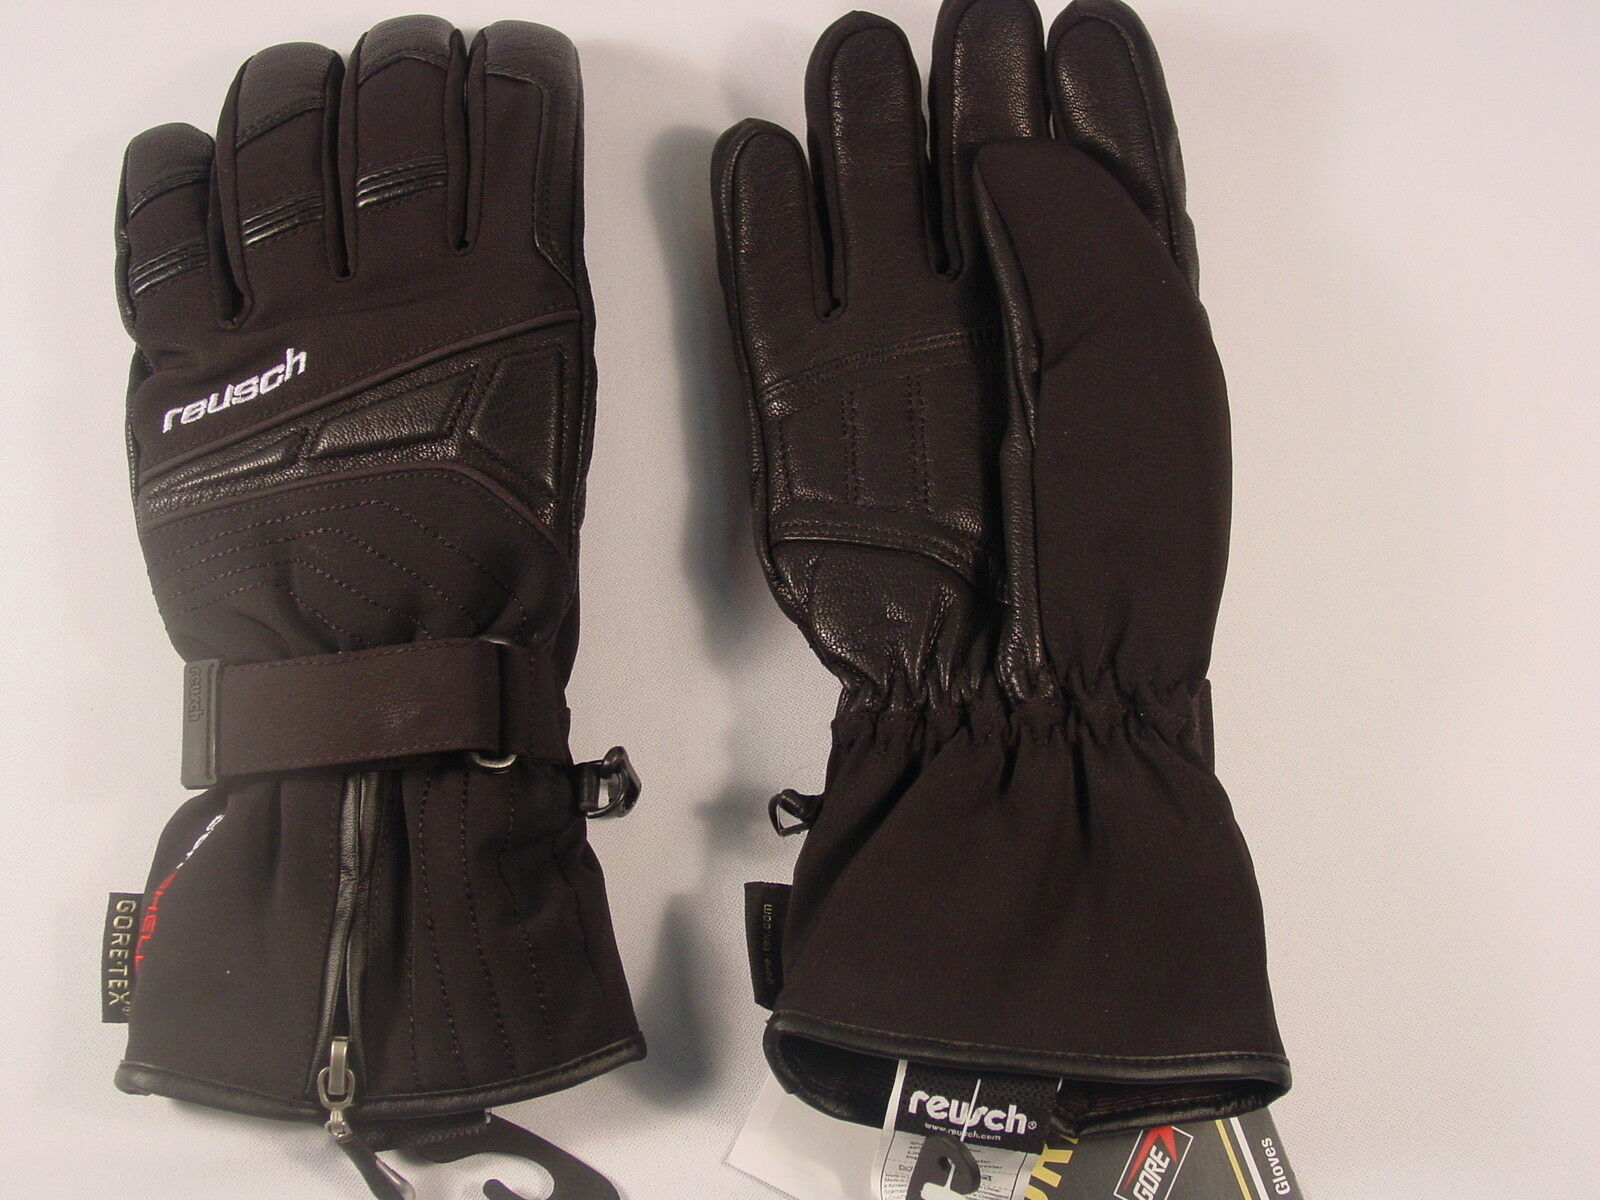 New Reusch Modus Gore Gore Modus Tex Ski Leder & Softshell Gloves Medium (8.5)  4001381 e10f45